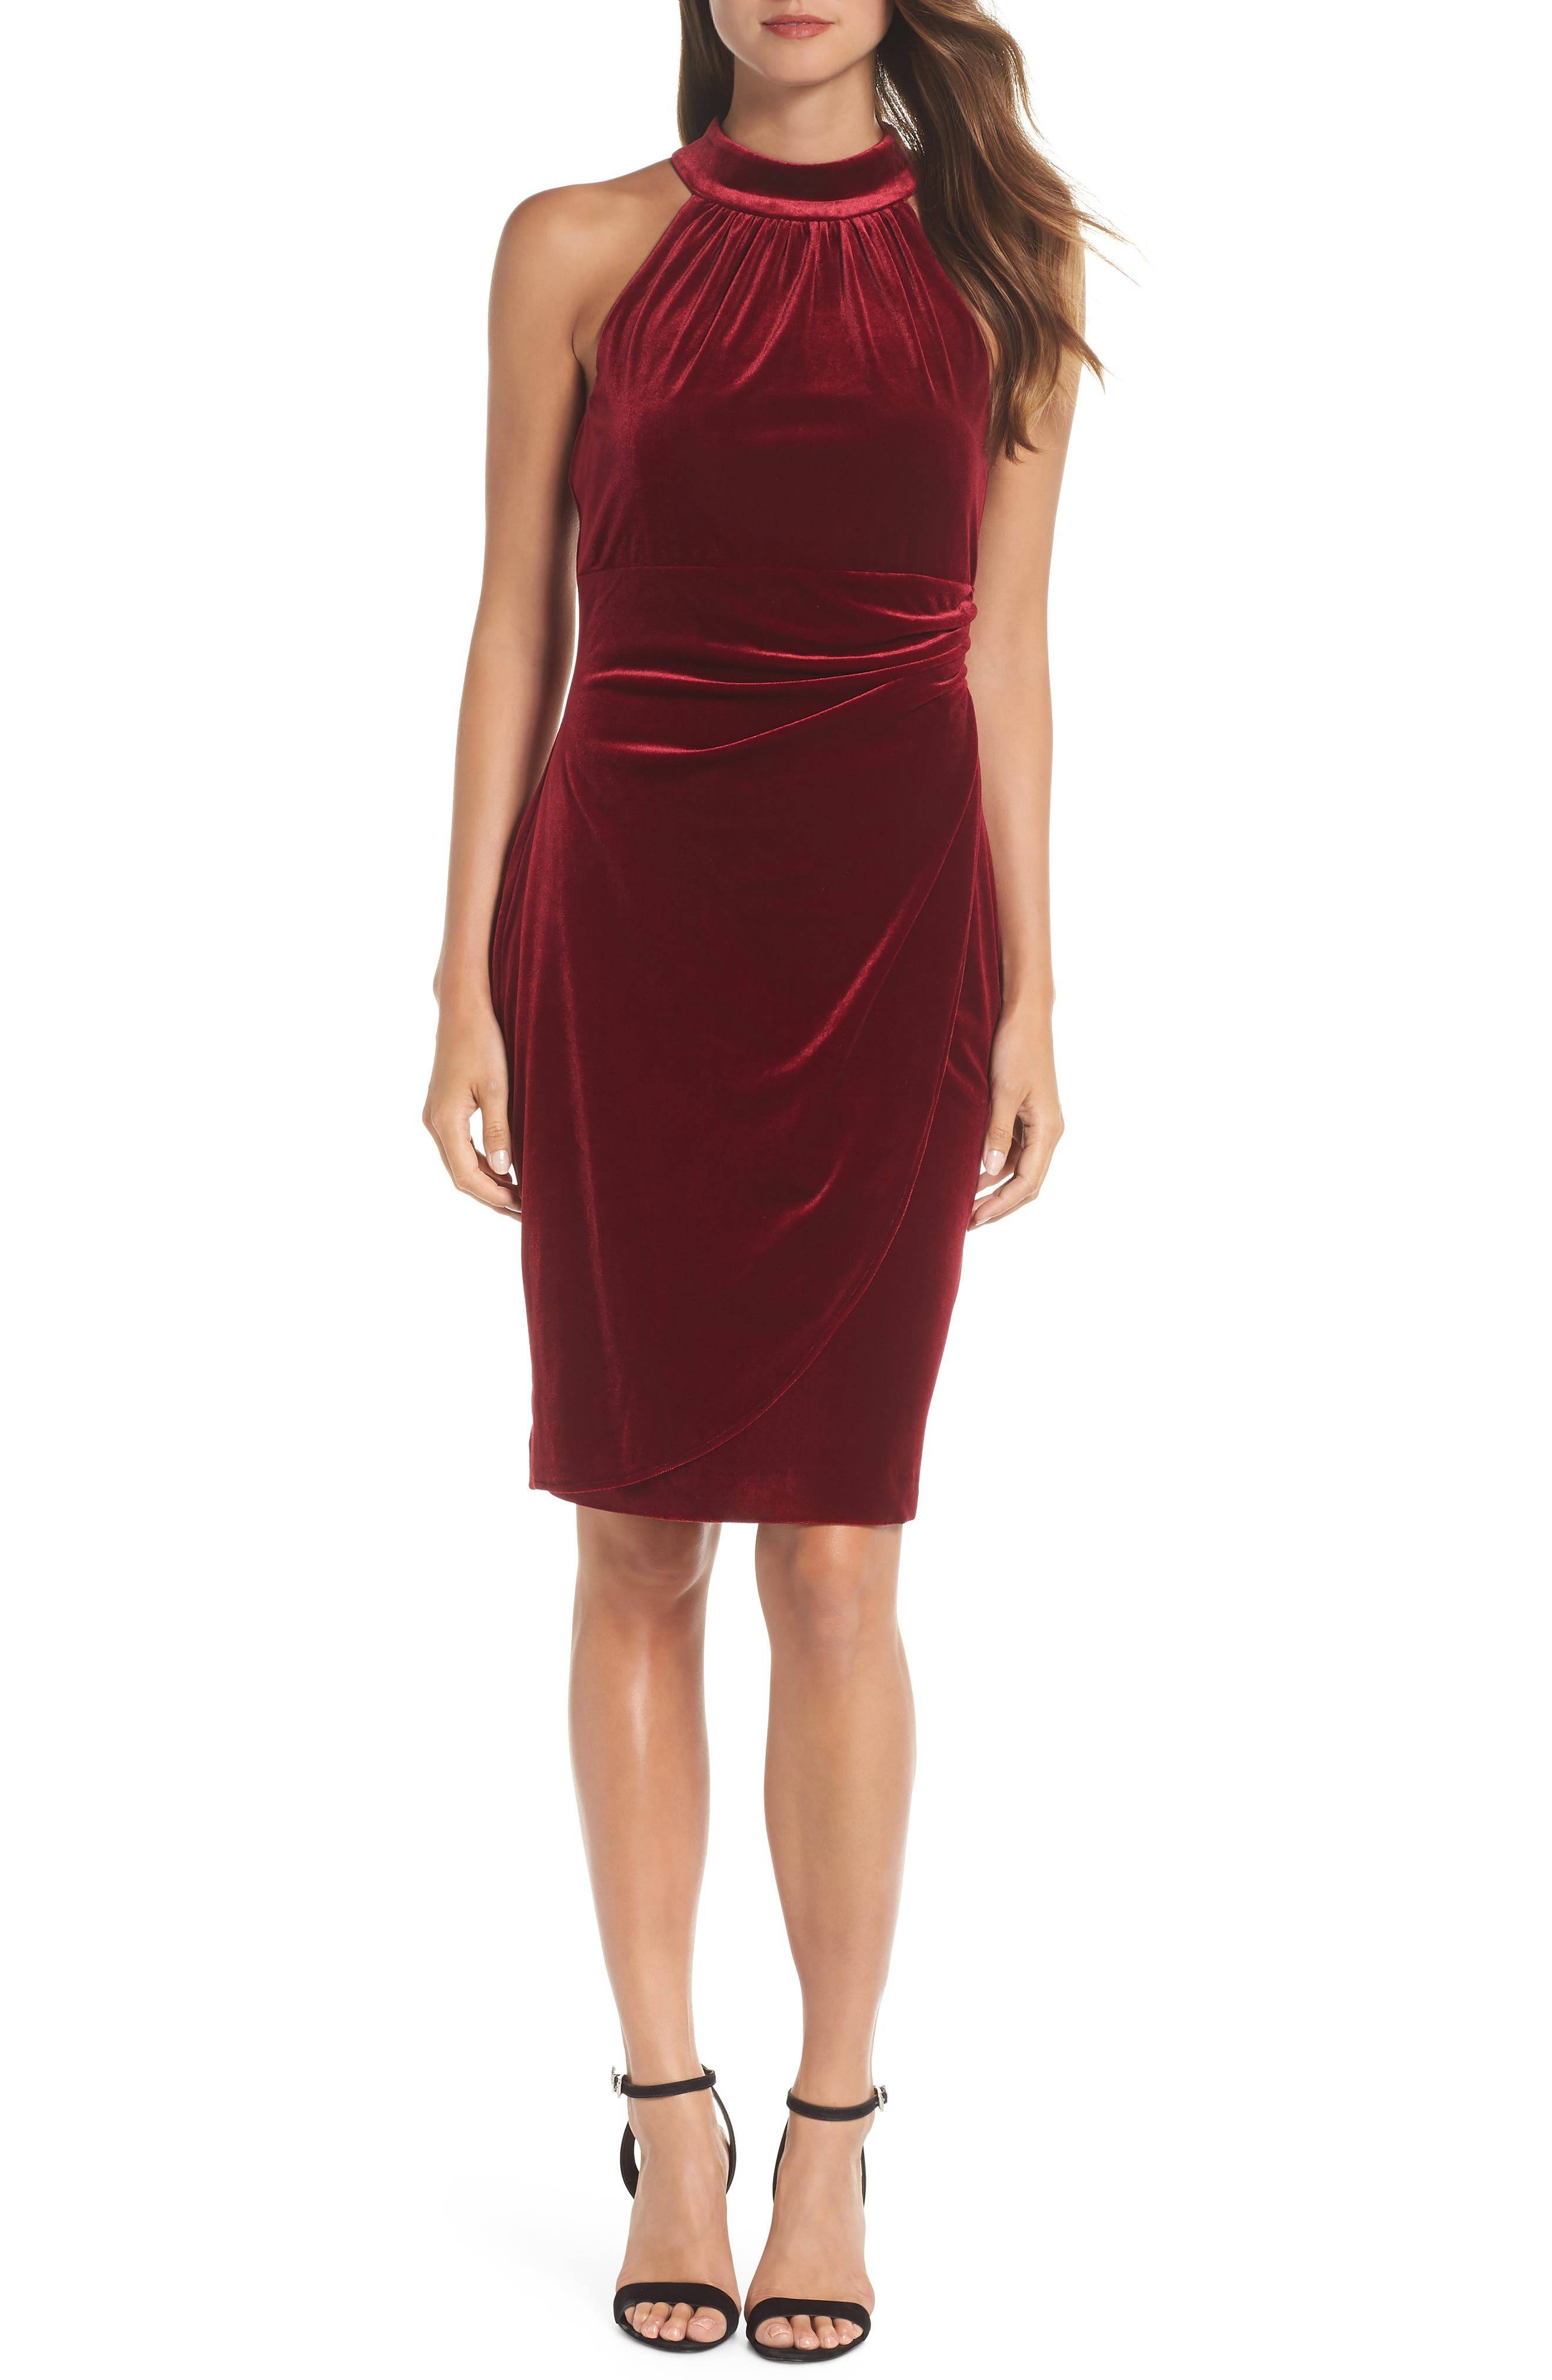 Vince Camuto Draped Velvet Cocktail Dress, Burgundy